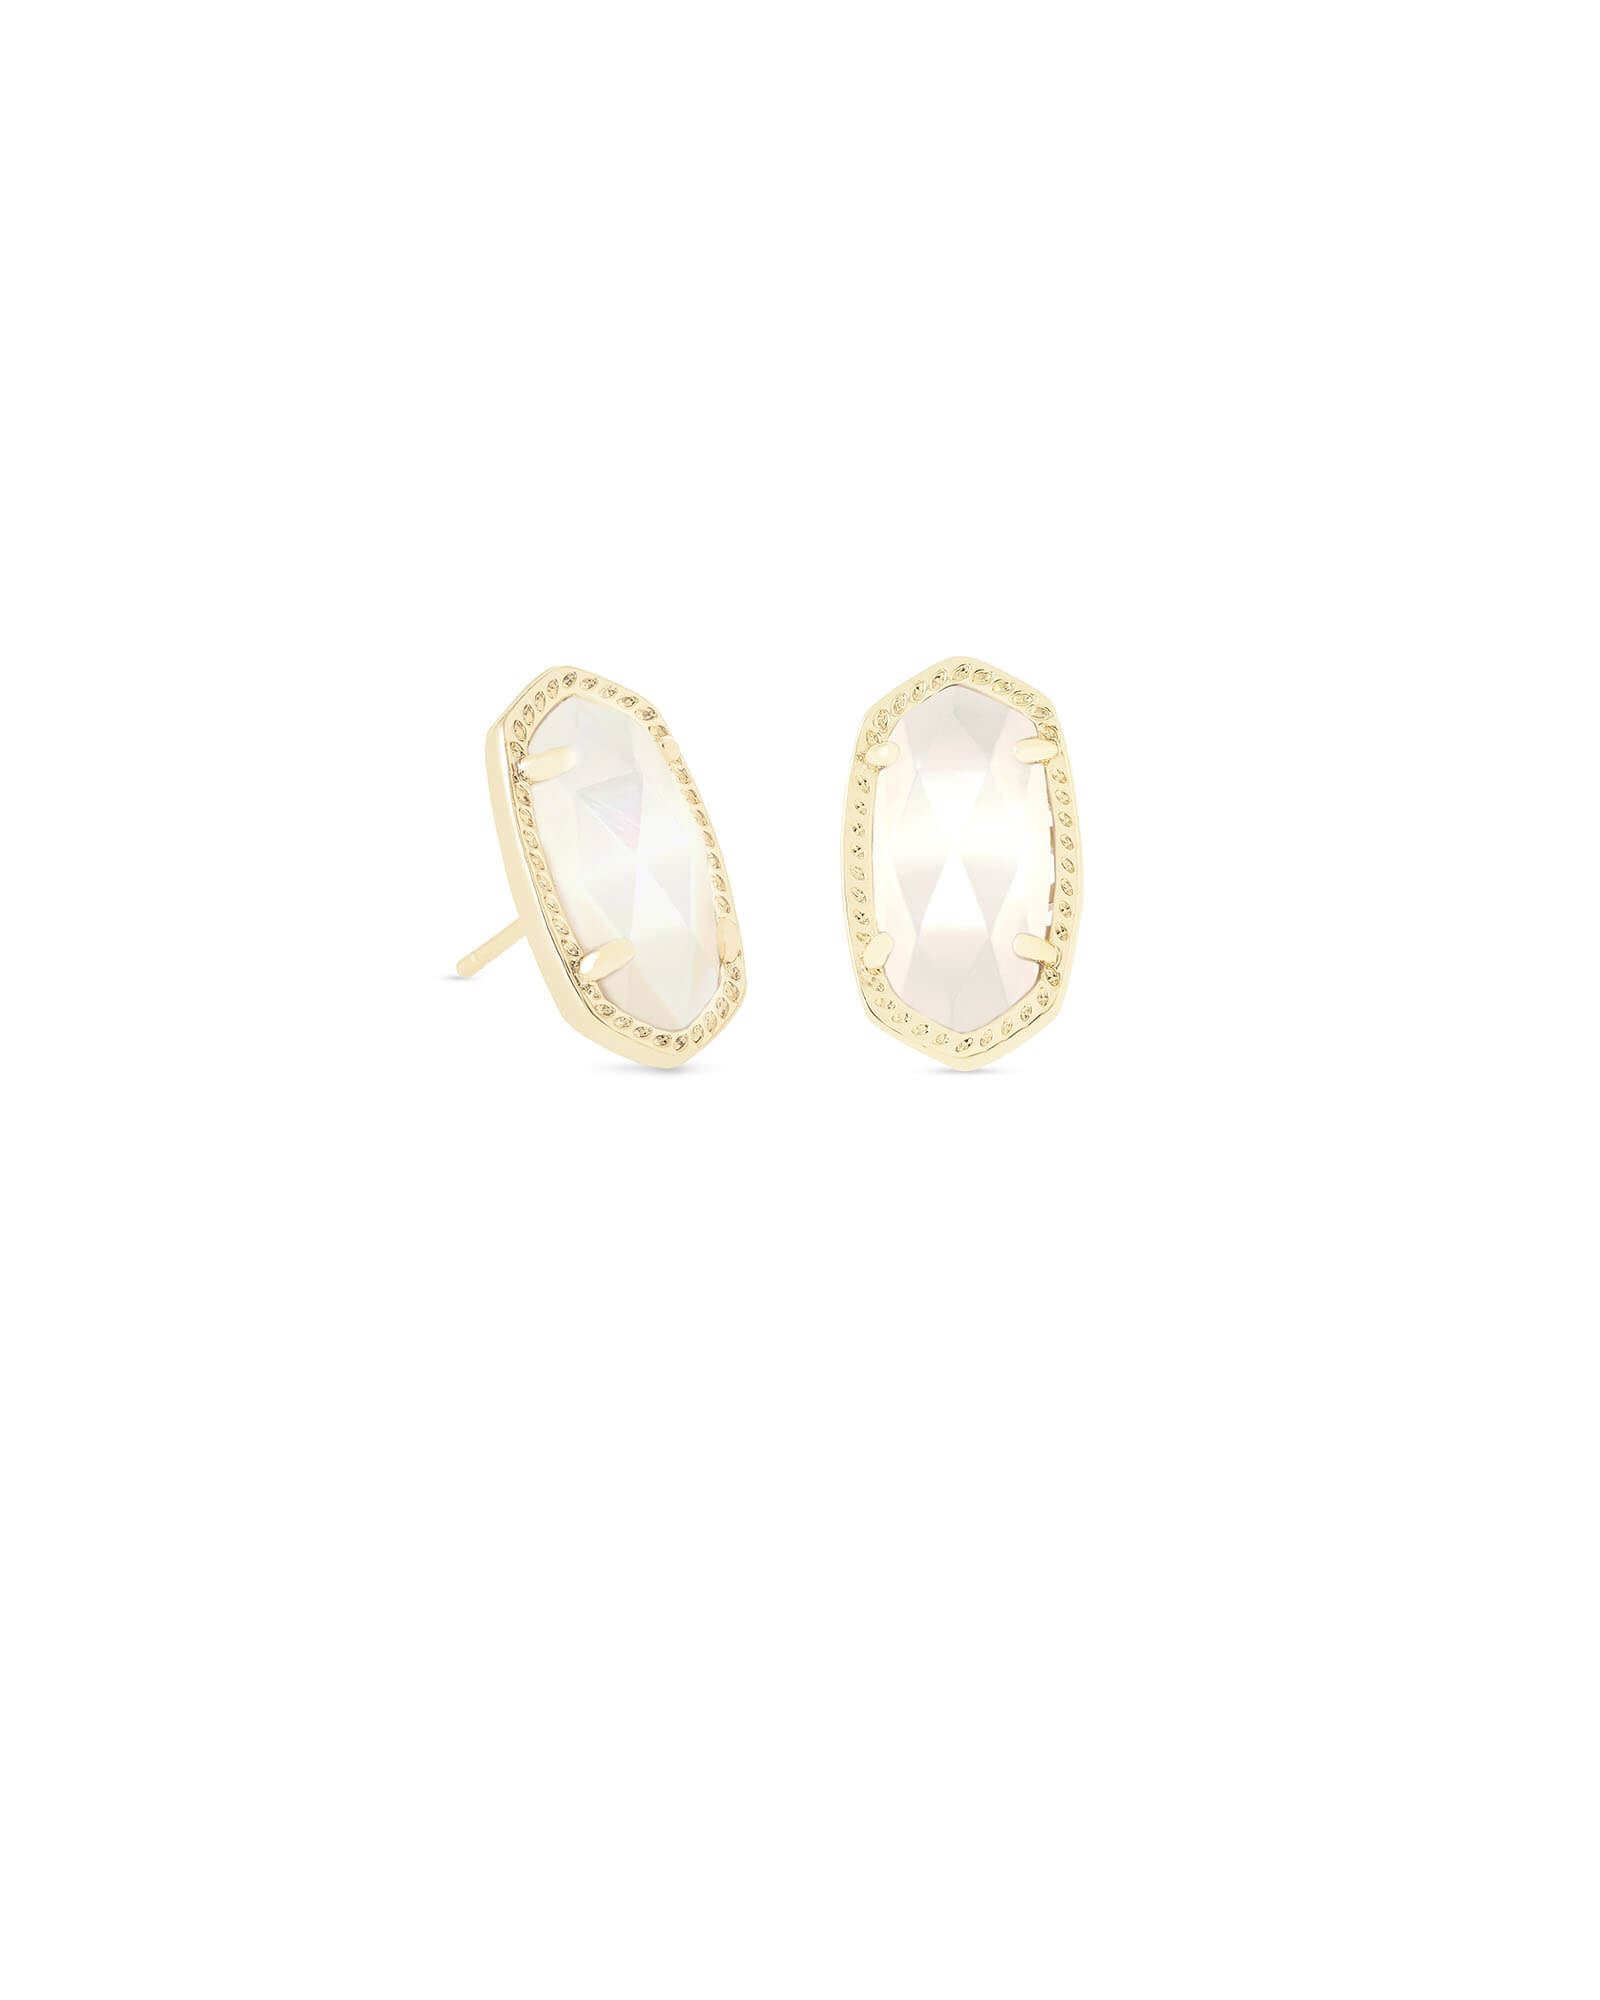 Ellie Gold Stud Earrings in Ivory Pearl